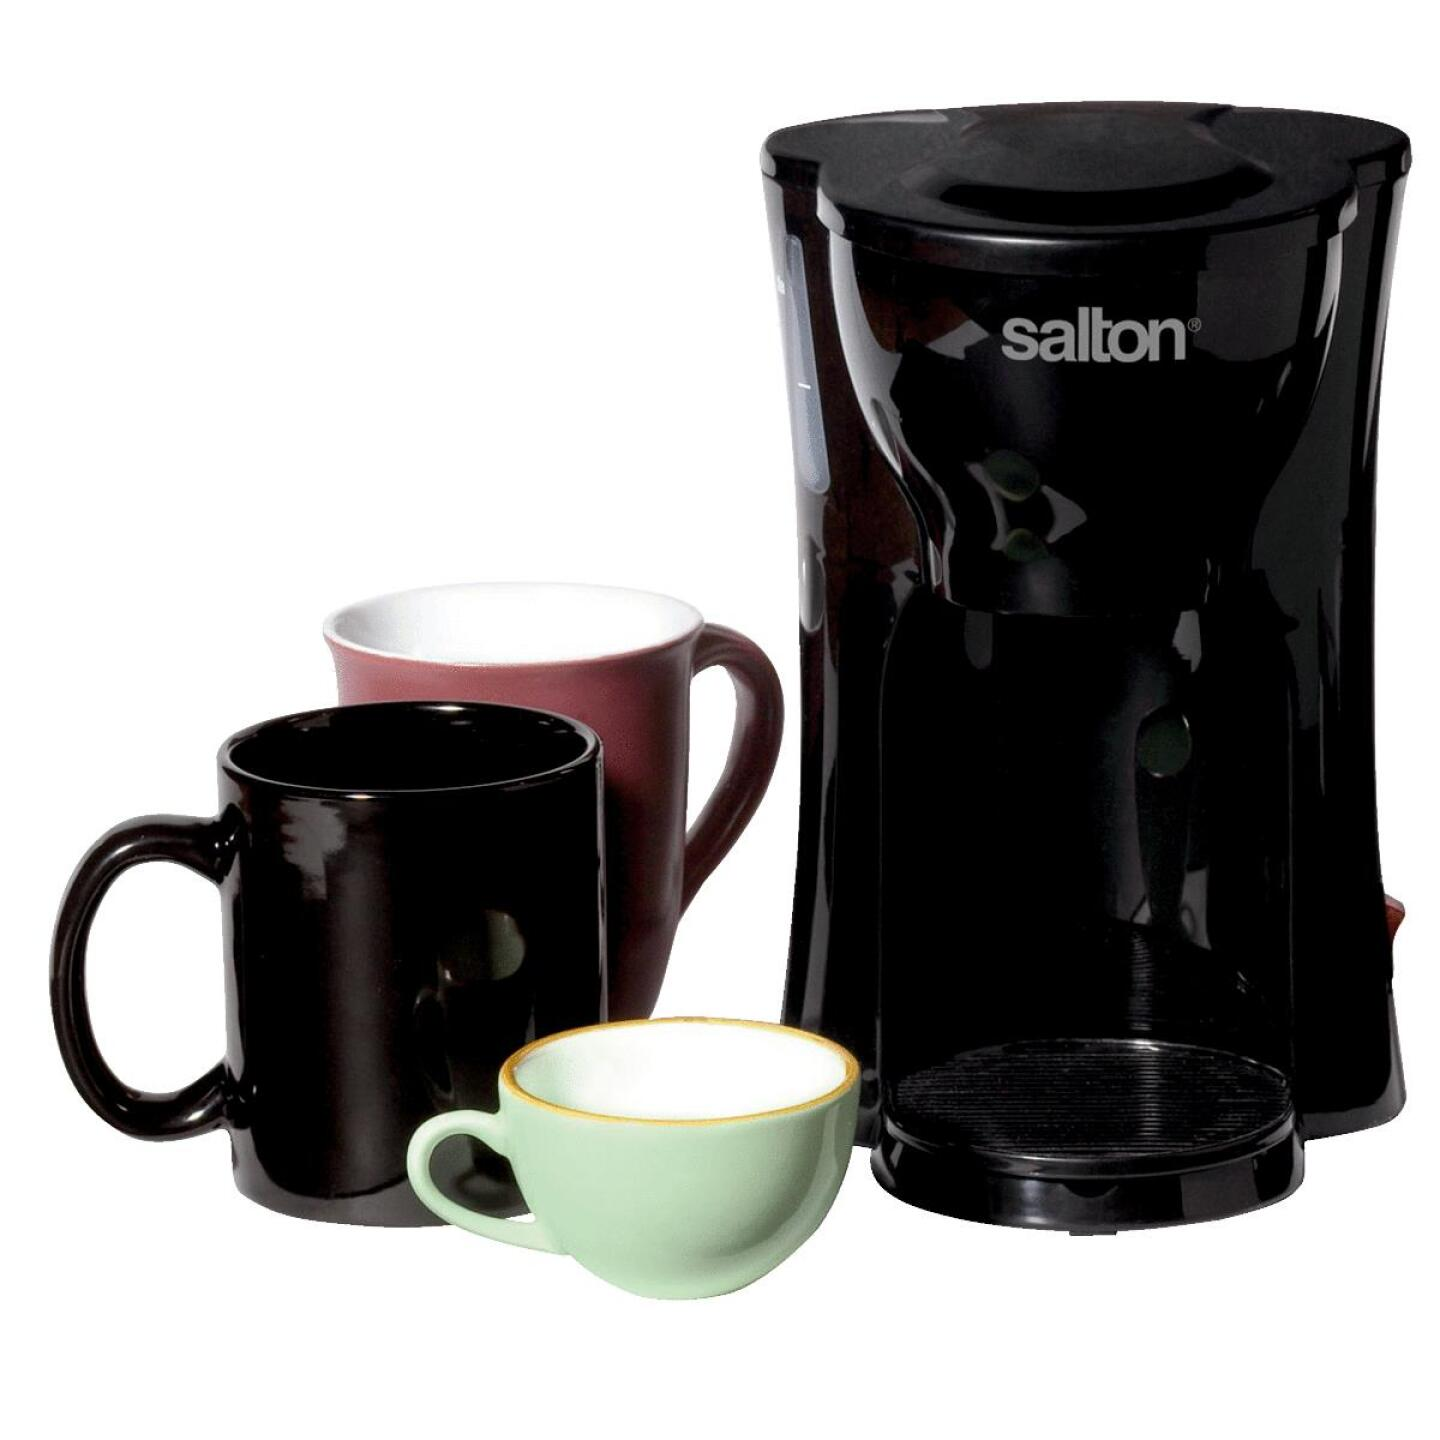 Salton 1-Cup Black Space Saving Coffee Maker Image 1